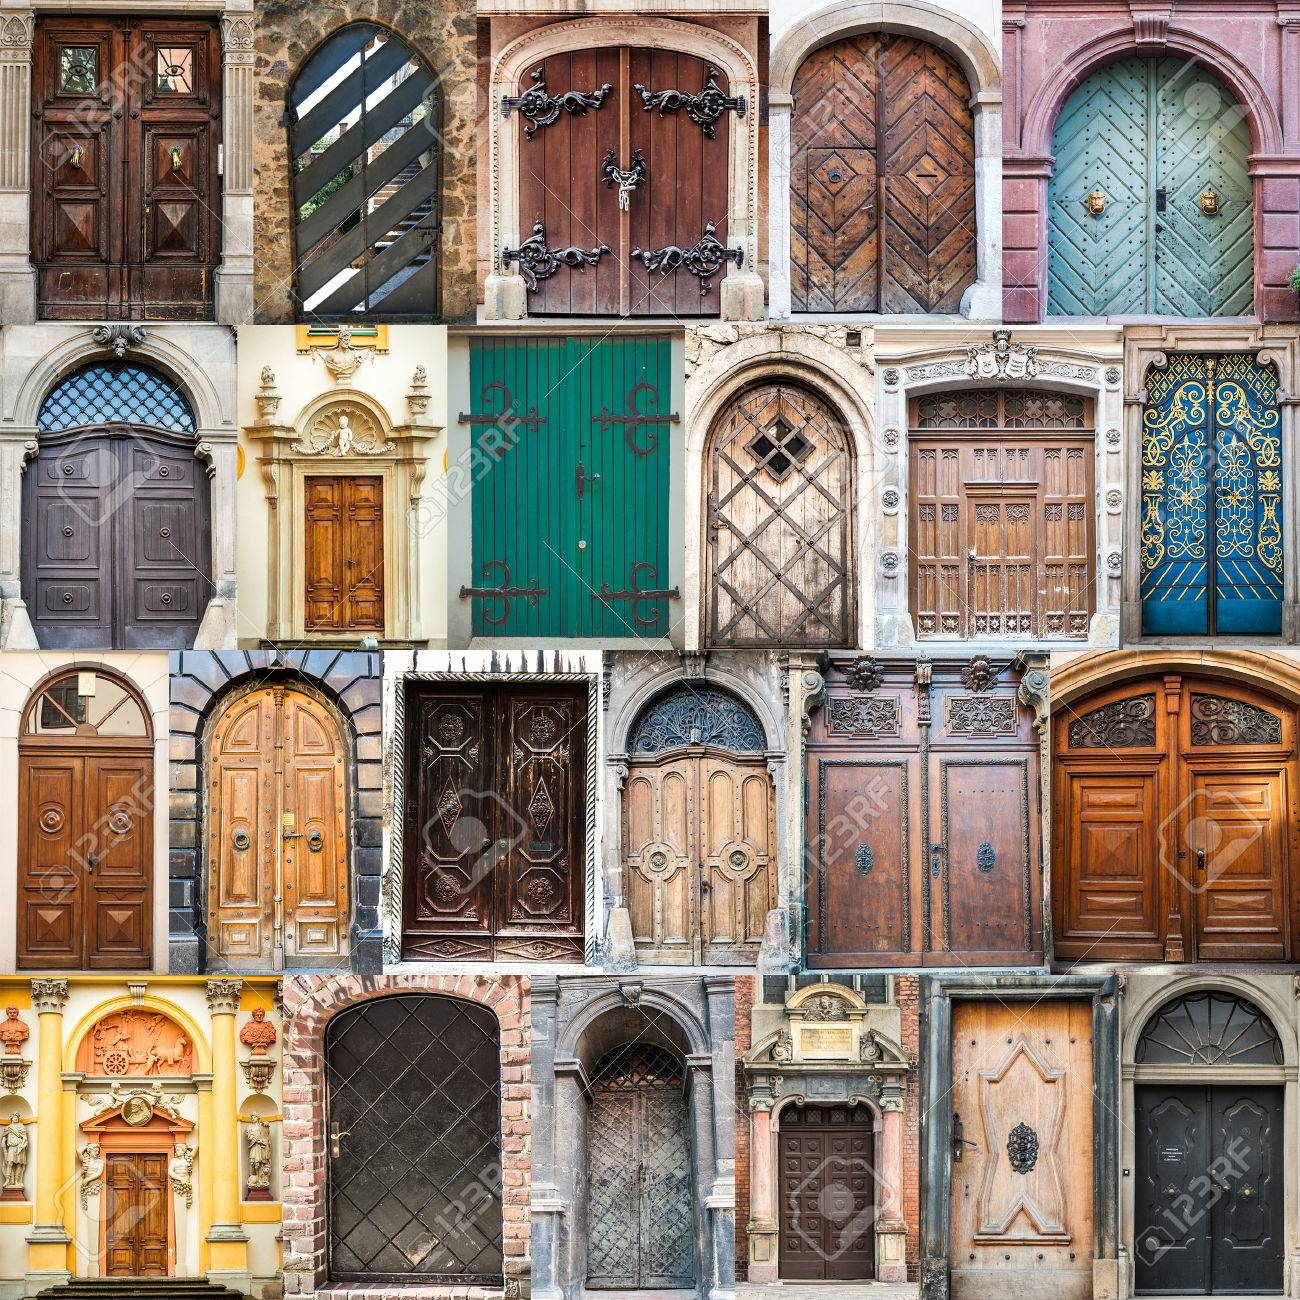 photos of doors on the old districts of Europe - 39465963